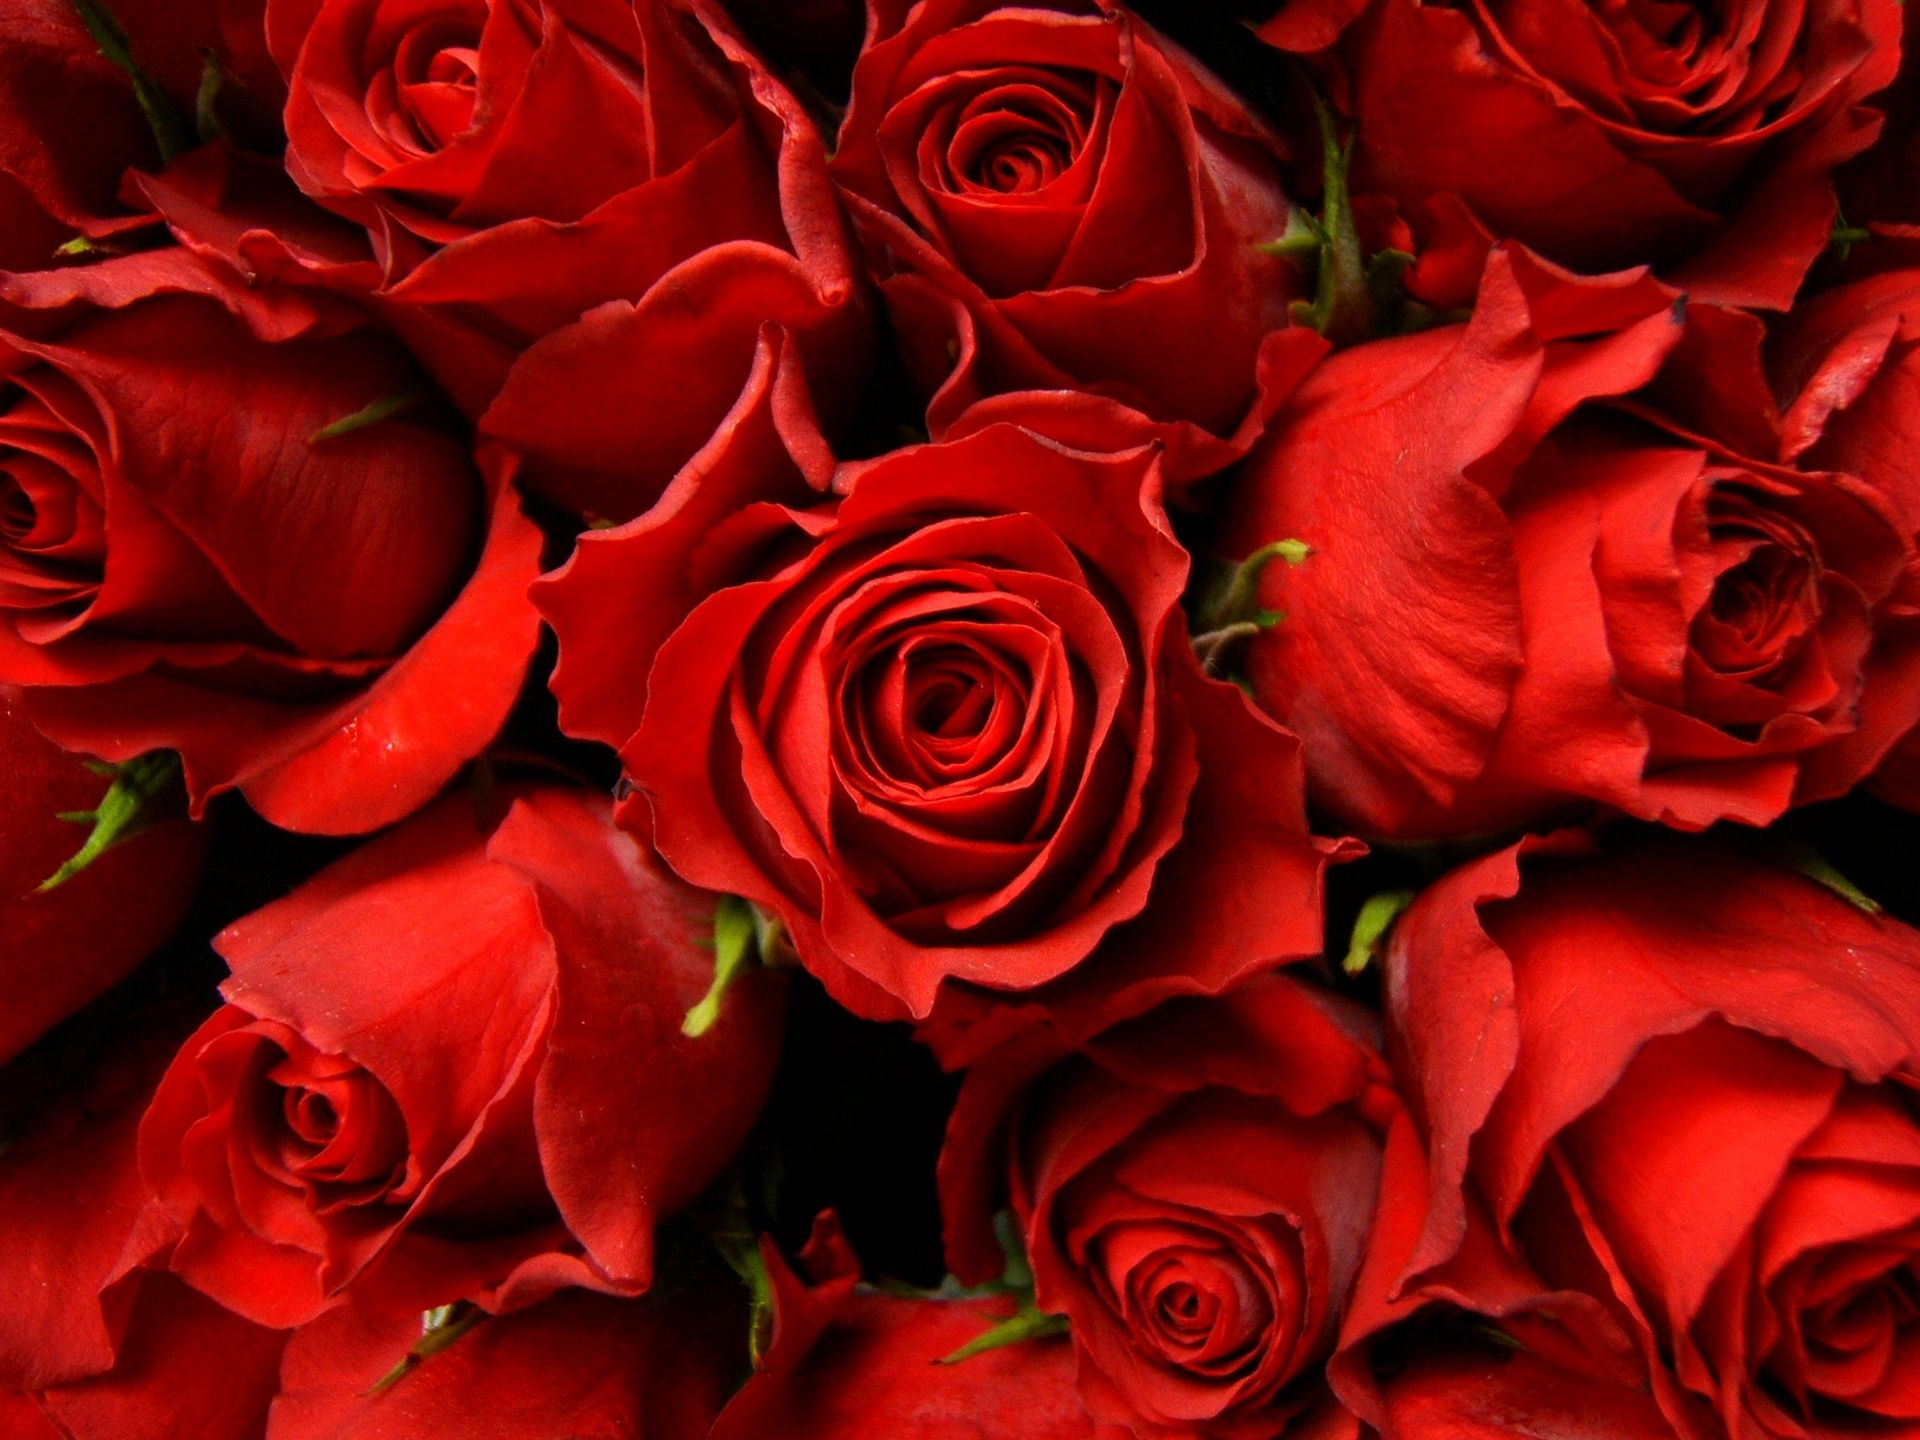 Red Roses Picture - Wallpaper, High Definition, High Quality | Bank ...